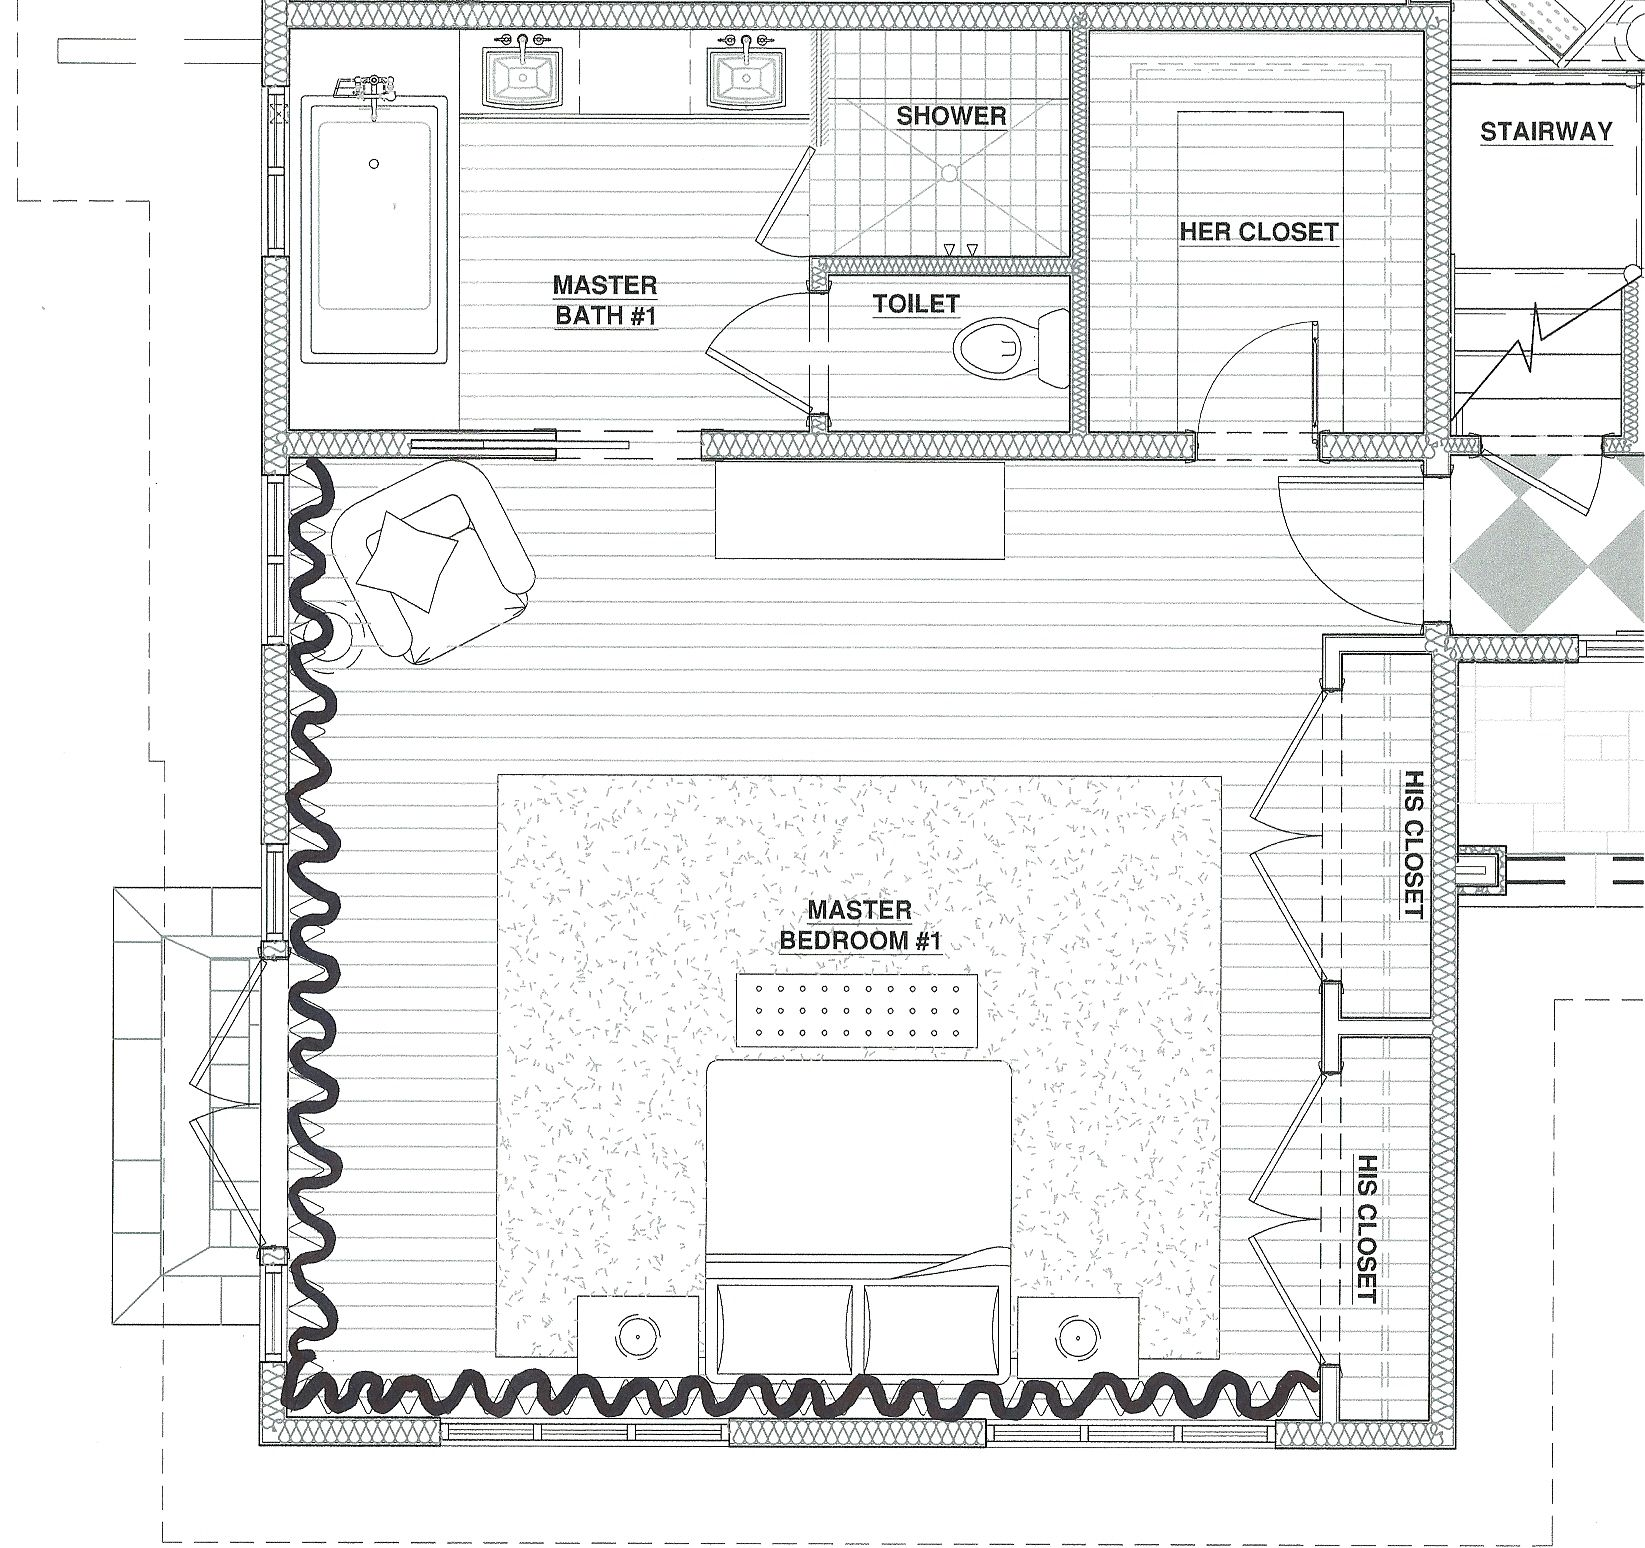 Master bedroom floor plans picture gallery of the master for Master bedroom flooring ideas